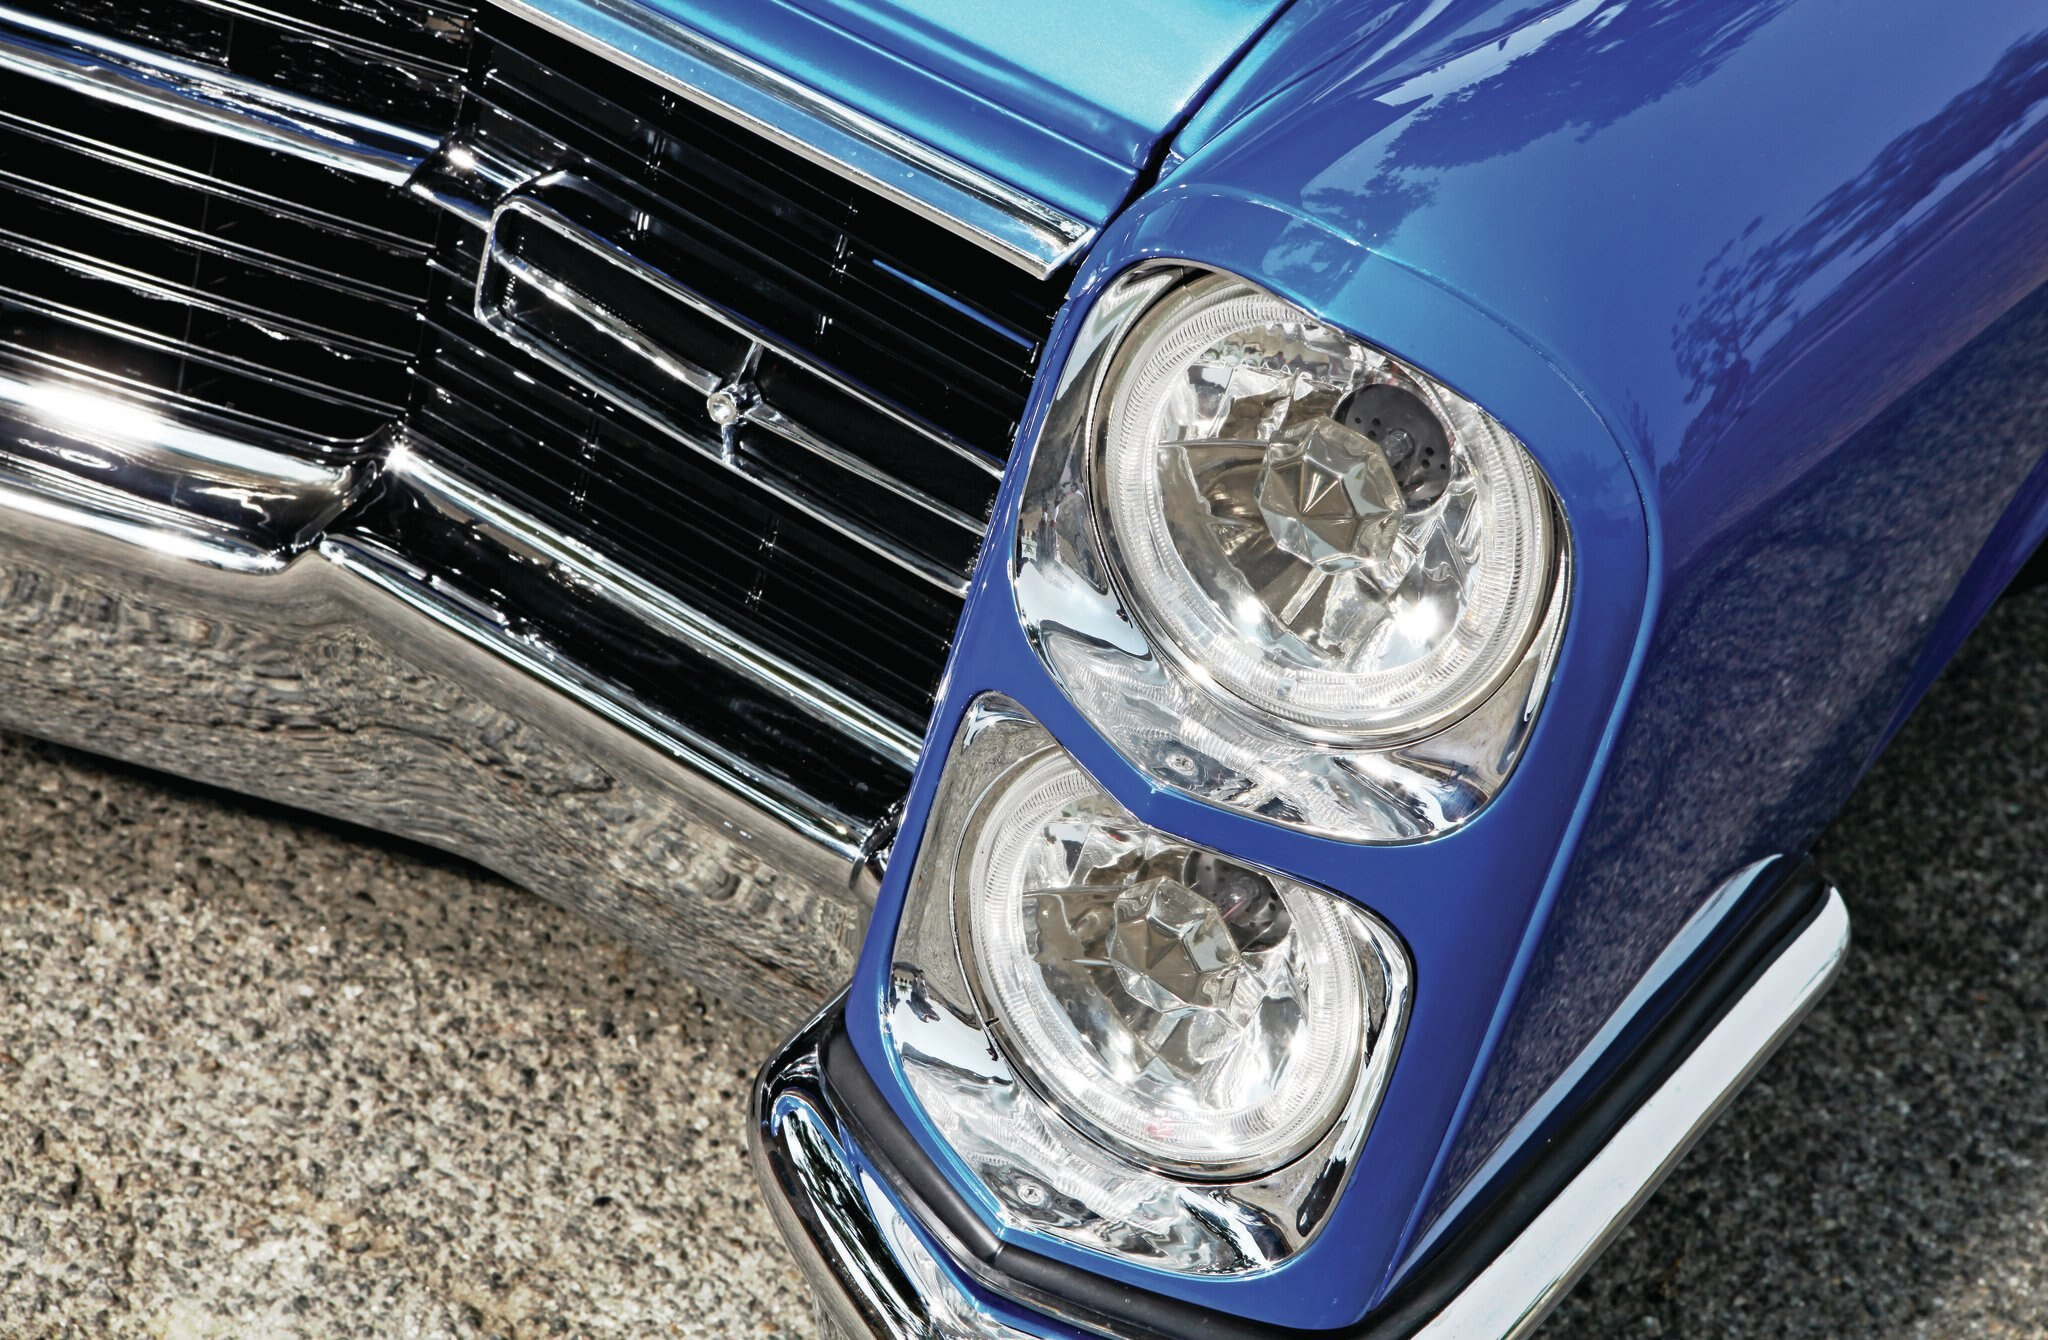 Cadillac Coupe Deville Headlights on 1966 Cadillac Engine Swap